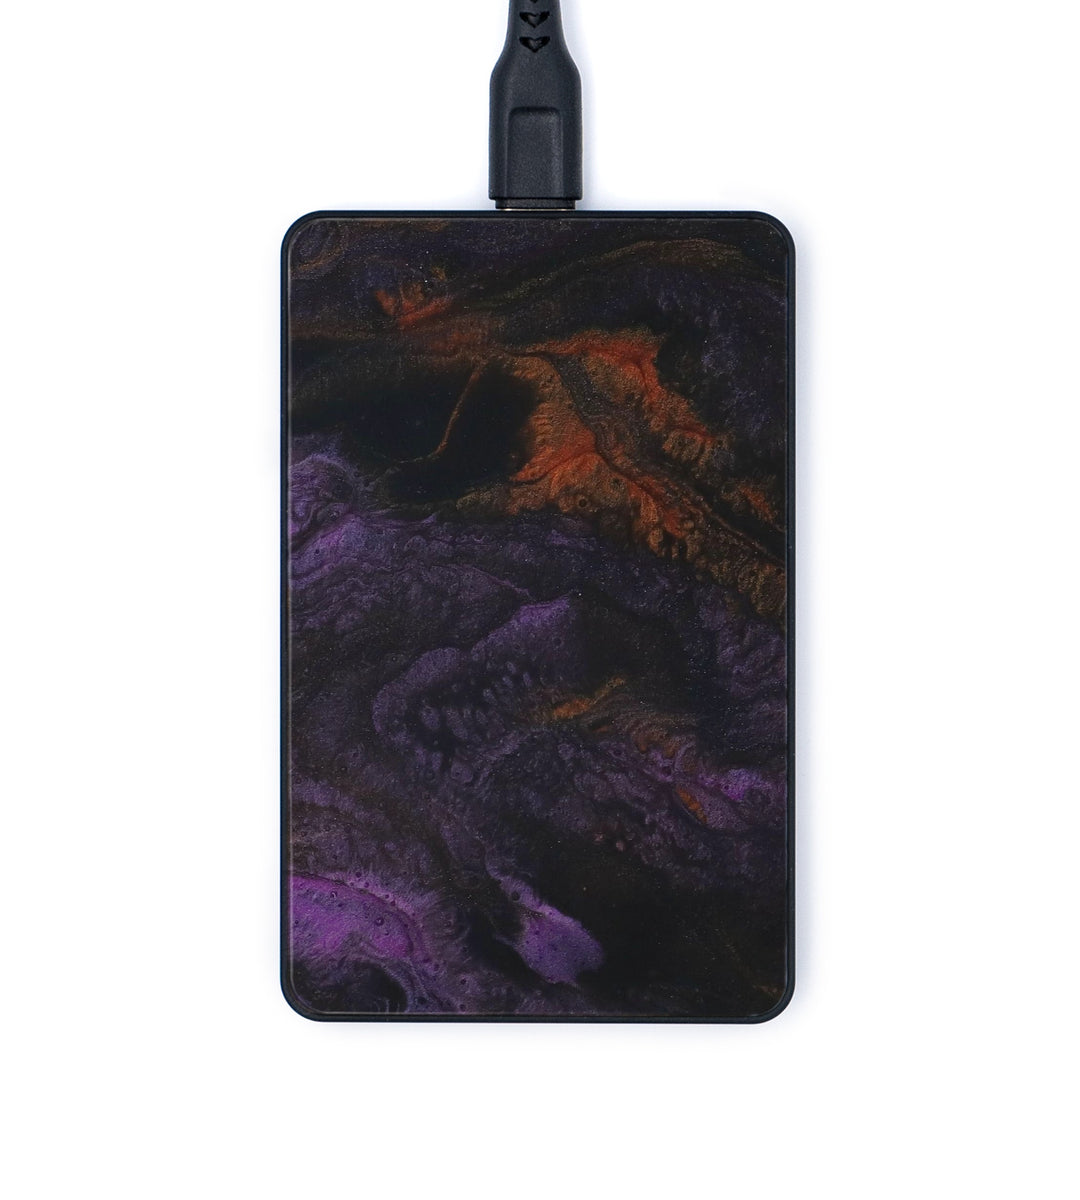 Thin Wireless Charger - Abigale (Teal & Gold, 346391)